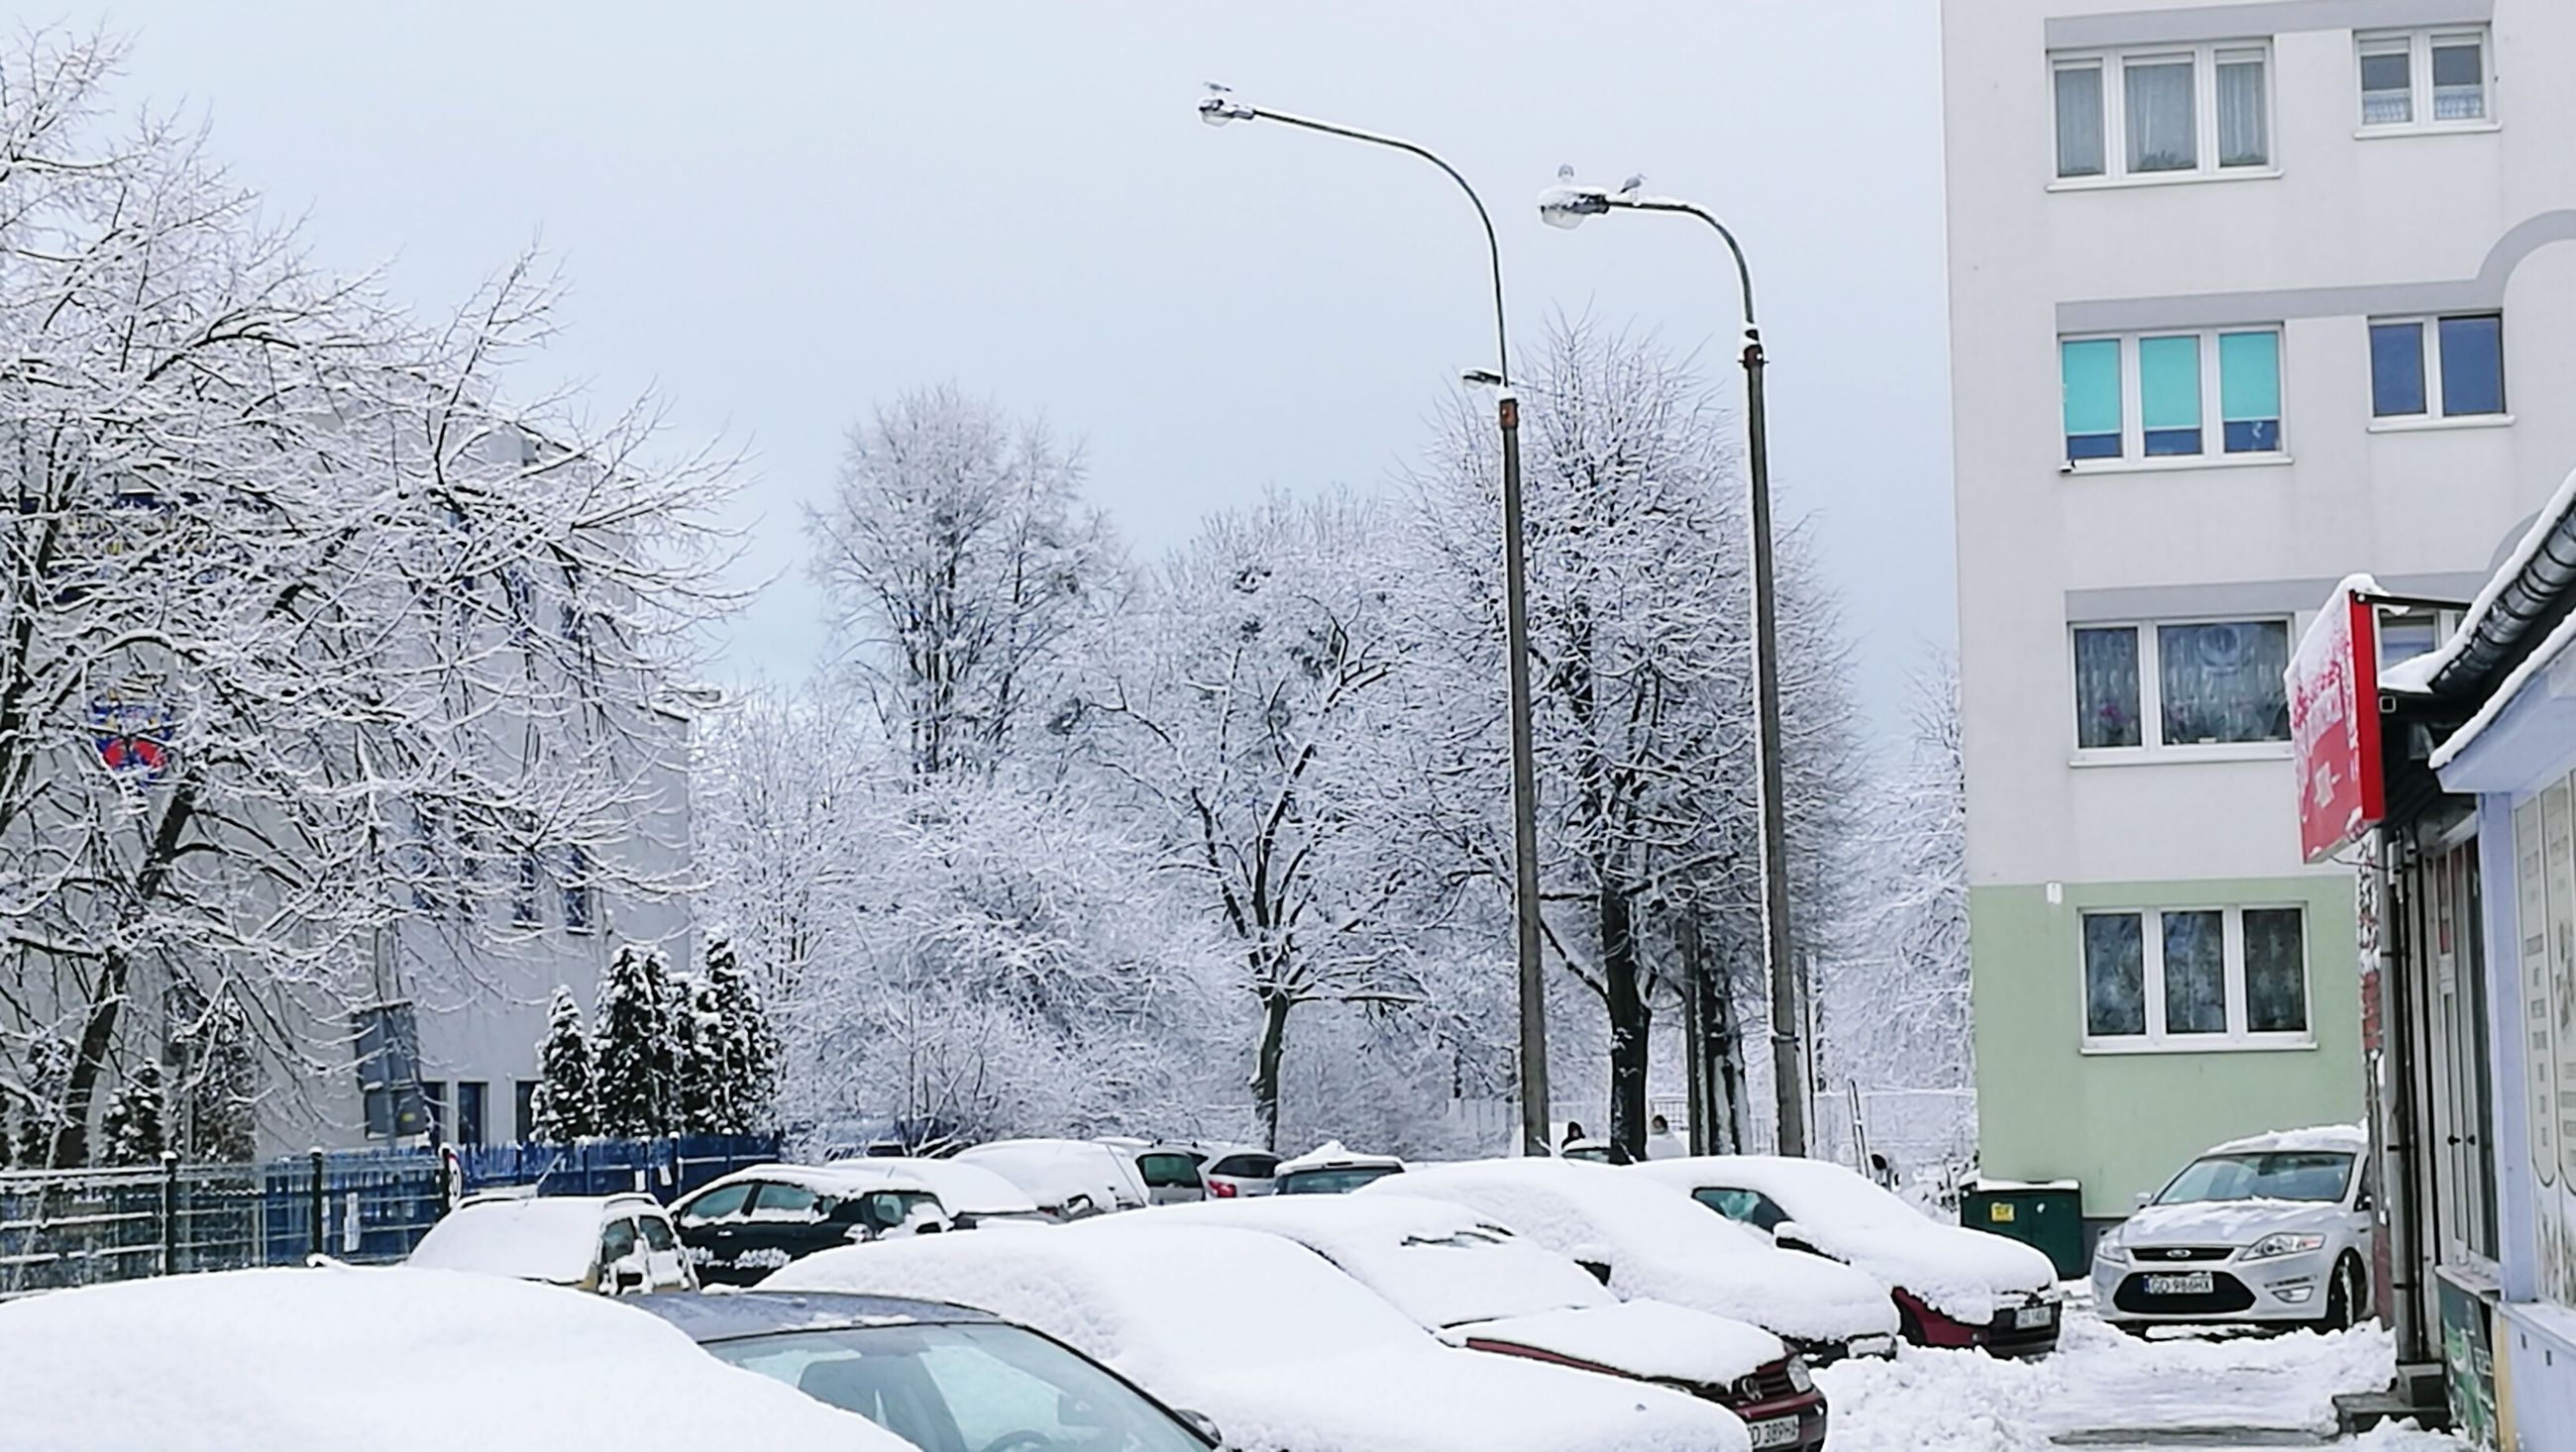 snow, winter, cold temperature, weather, tree, building exterior, city, no people, sky, outdoors, day, snowing, architecture